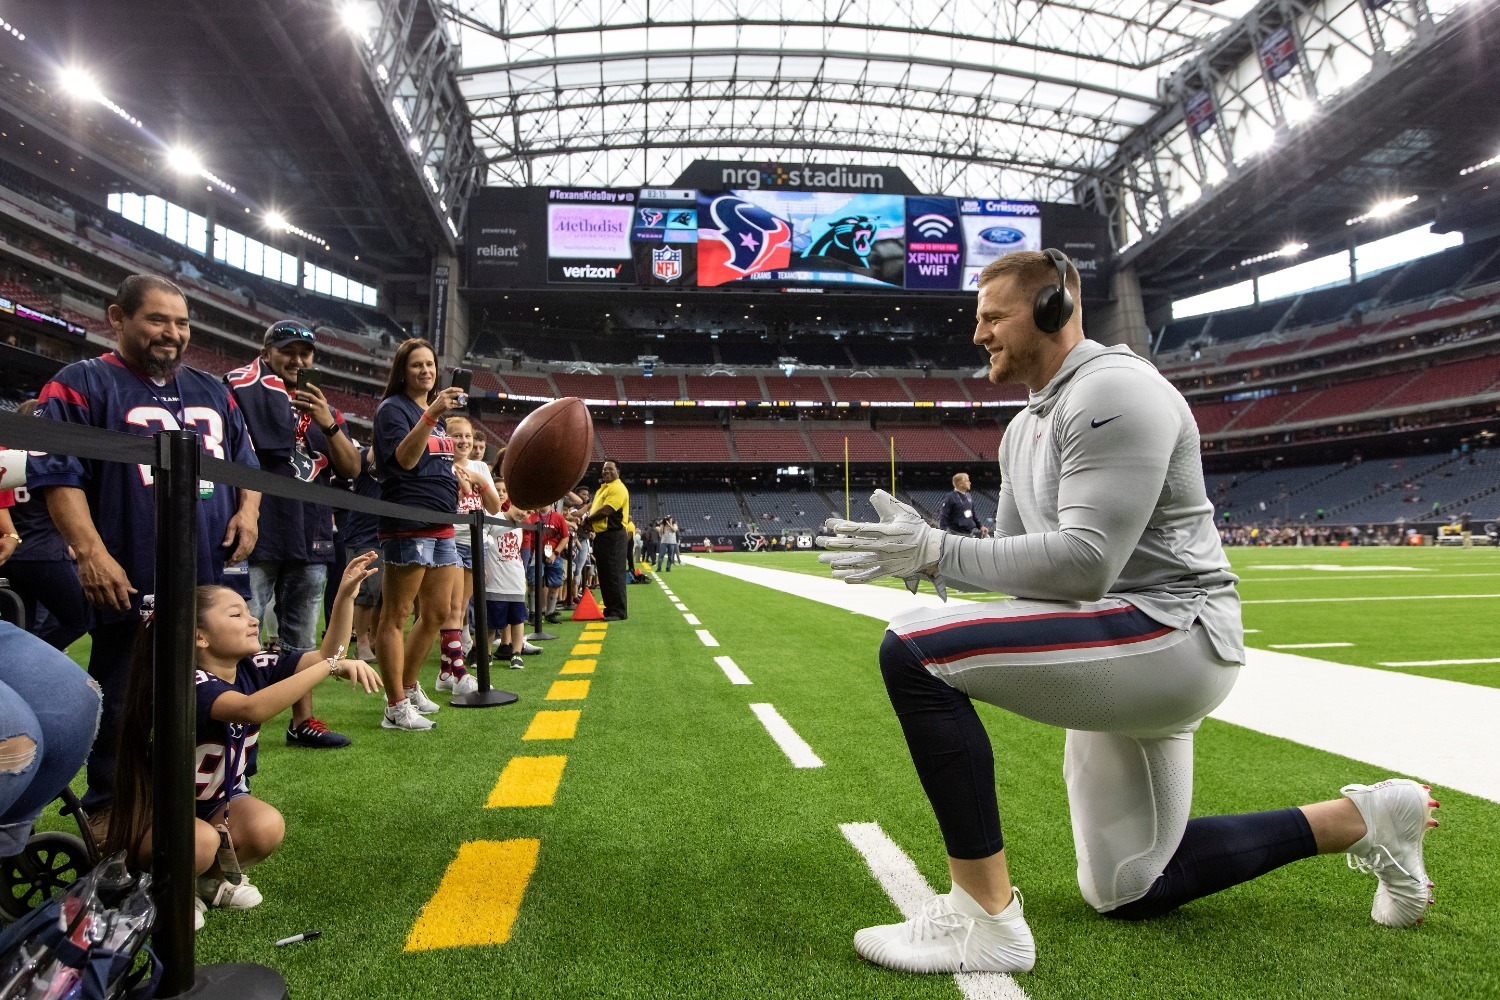 J.J. Watt just admitted his true feelings about Texans fans, who have had to endure years of frustration with Bill O'Brien at the helm. Will a change at head coach help Houston turn its season around?